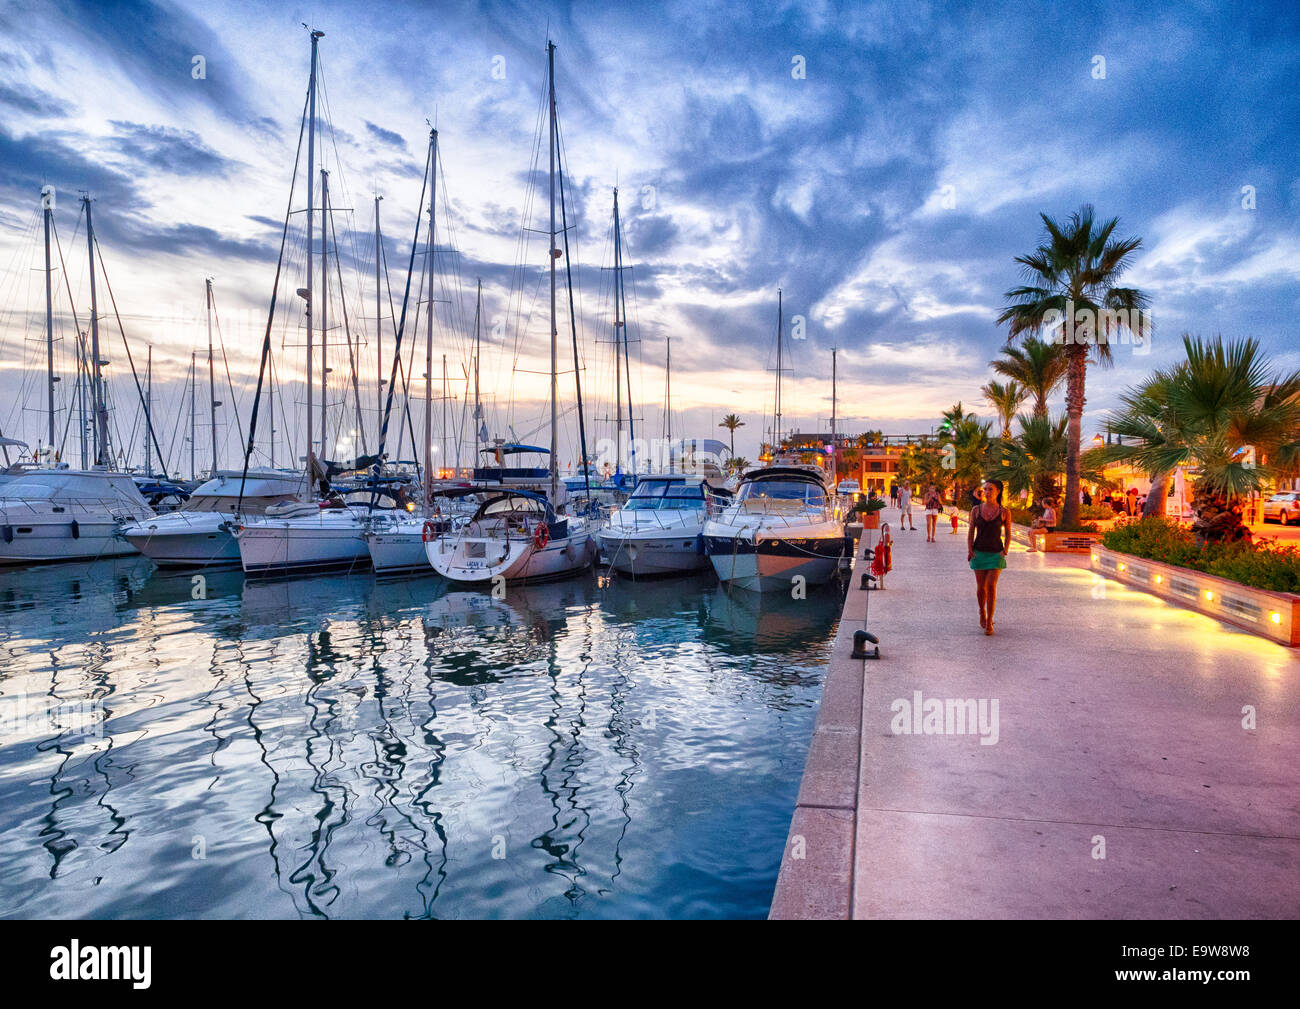 Denia´s nautical port at dusk - Stock Image